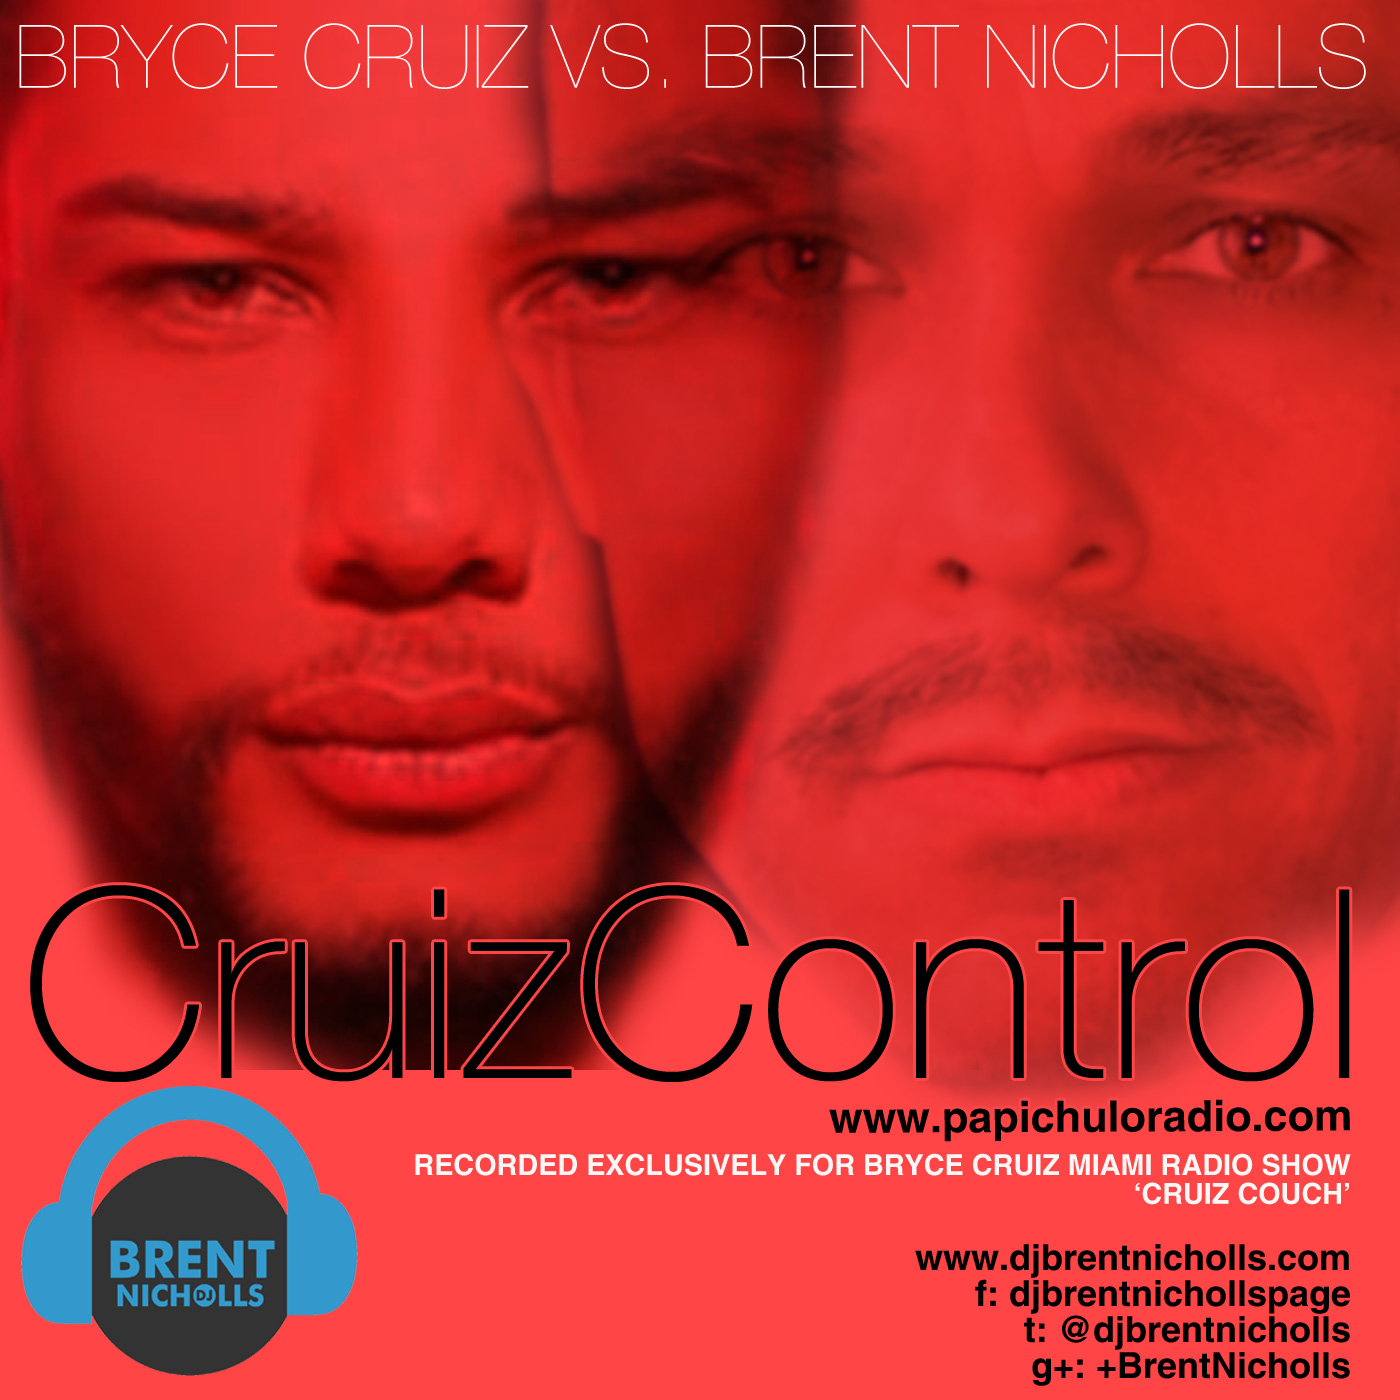 PODCAST: CRUIZ CONTROL